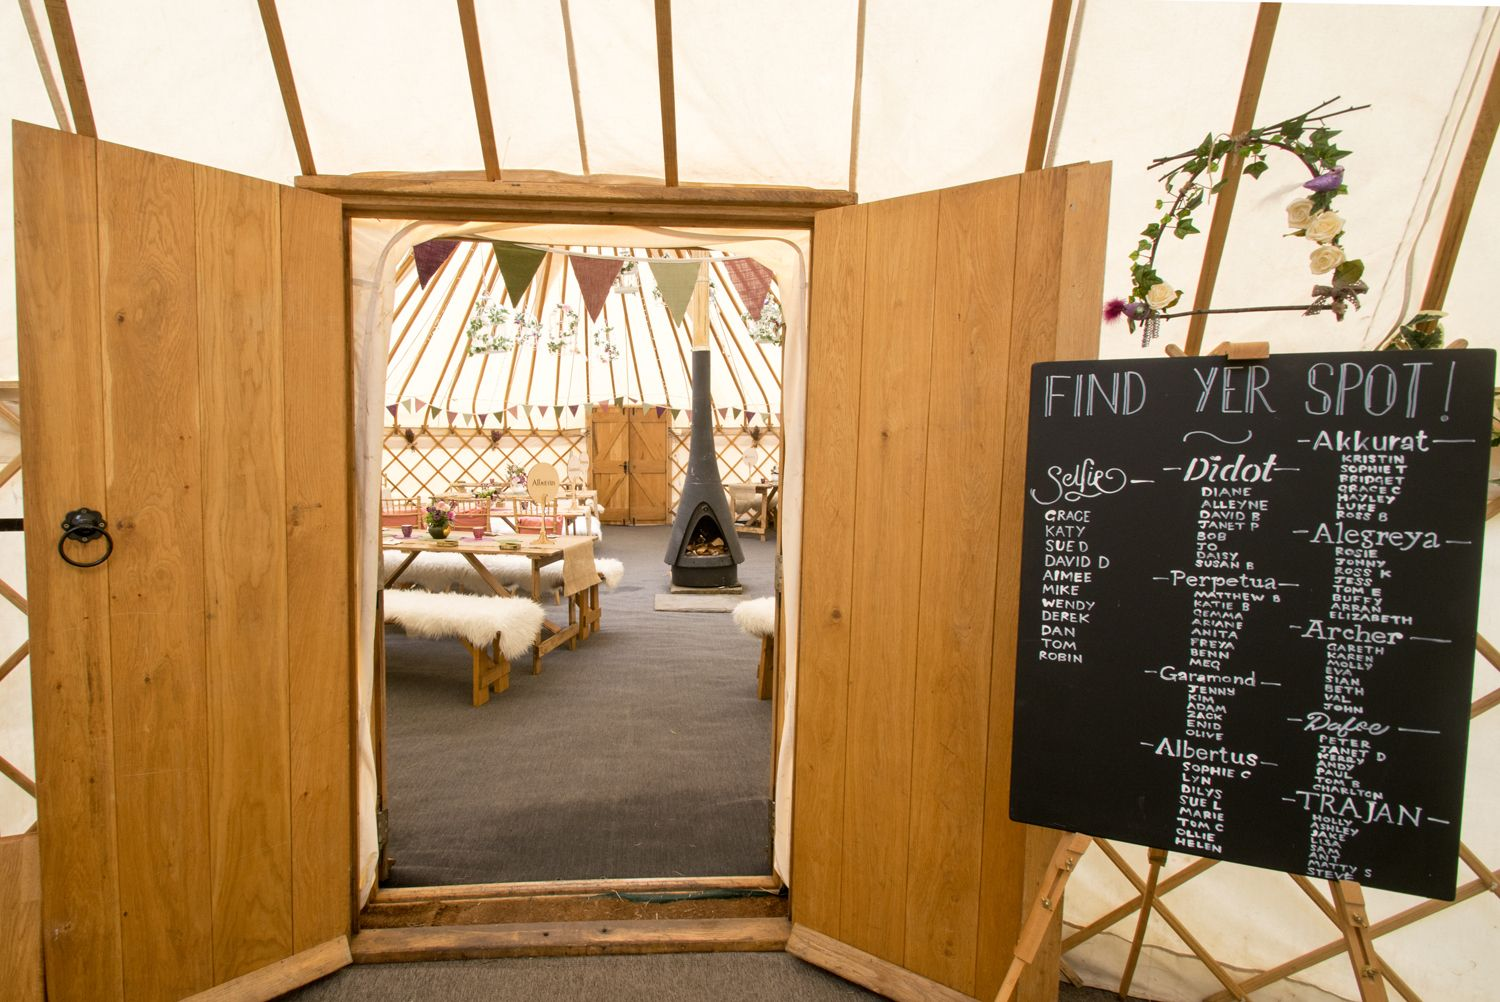 Yorkshire Yurt 1, bar area and table plan - Photo by Ruth Mitchell Photography